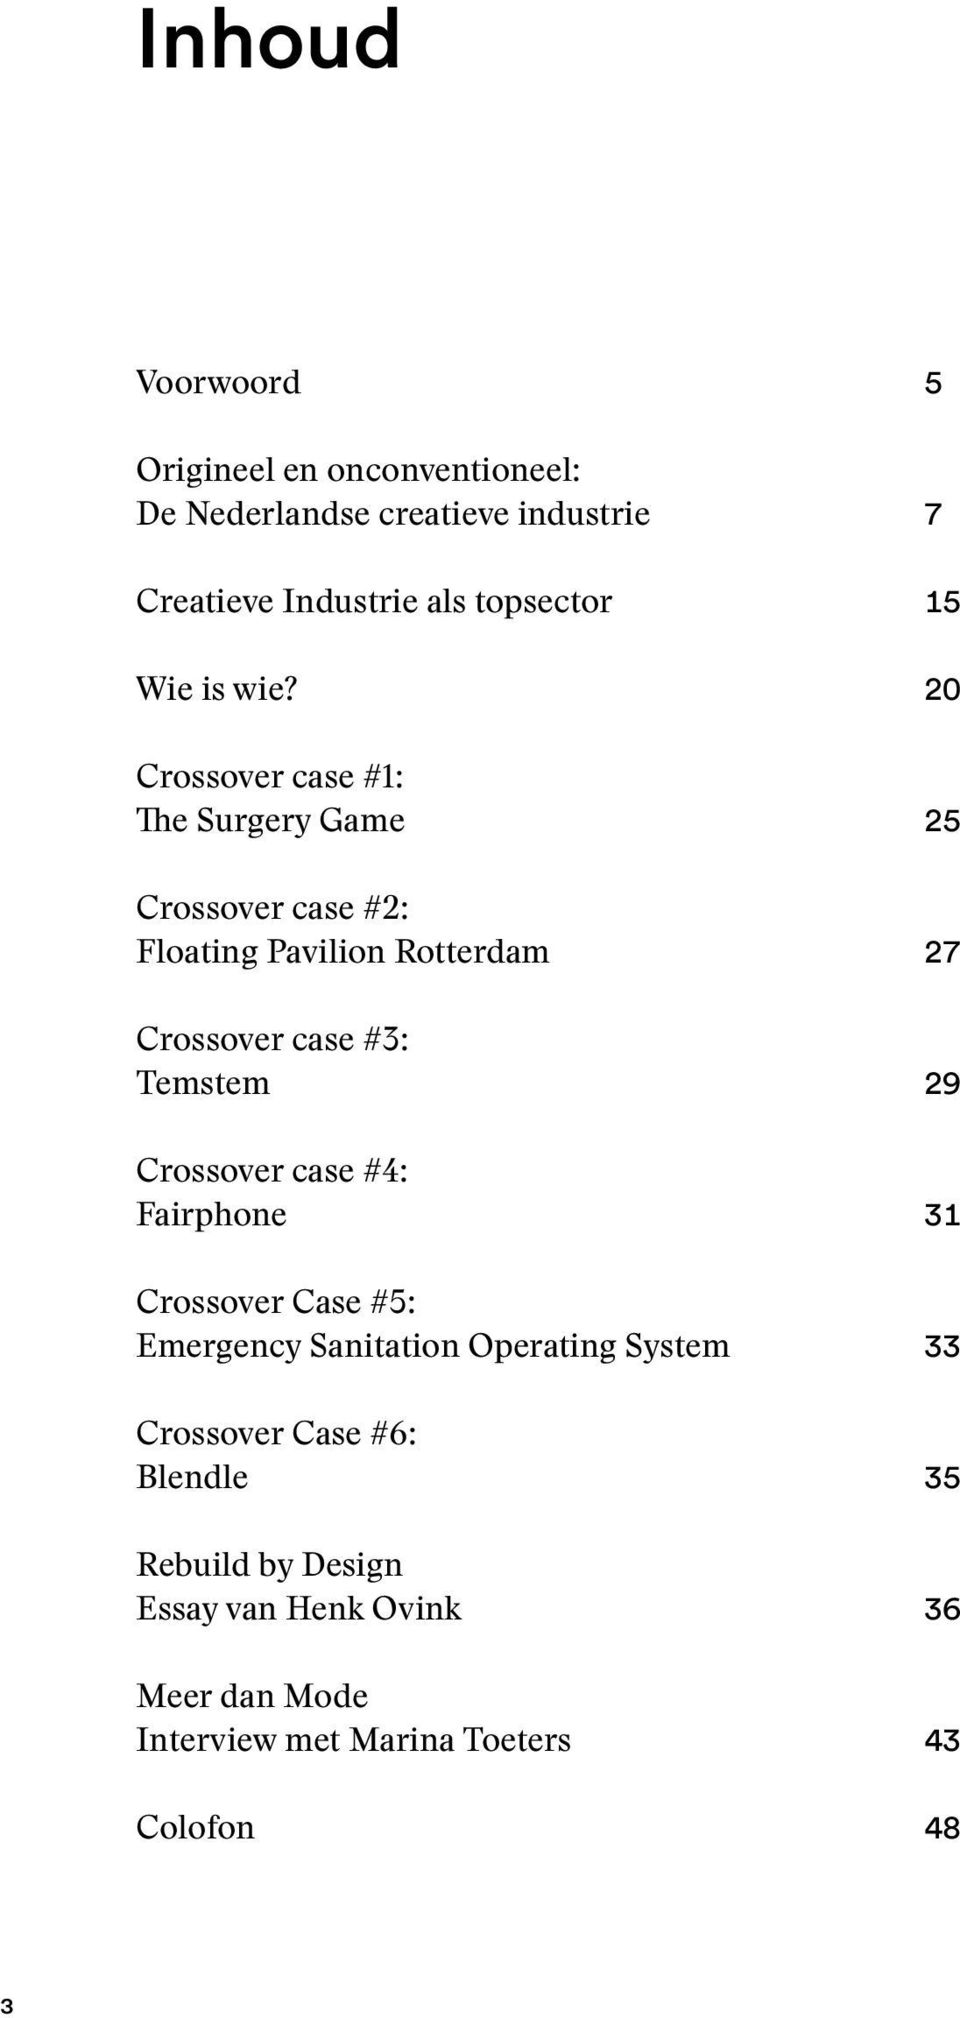 20 Crossover case #1: The Surgery Game 25 Crossover case #2: Floating Pavilion Rotterdam 27 Crossover case #3: Temstem 29